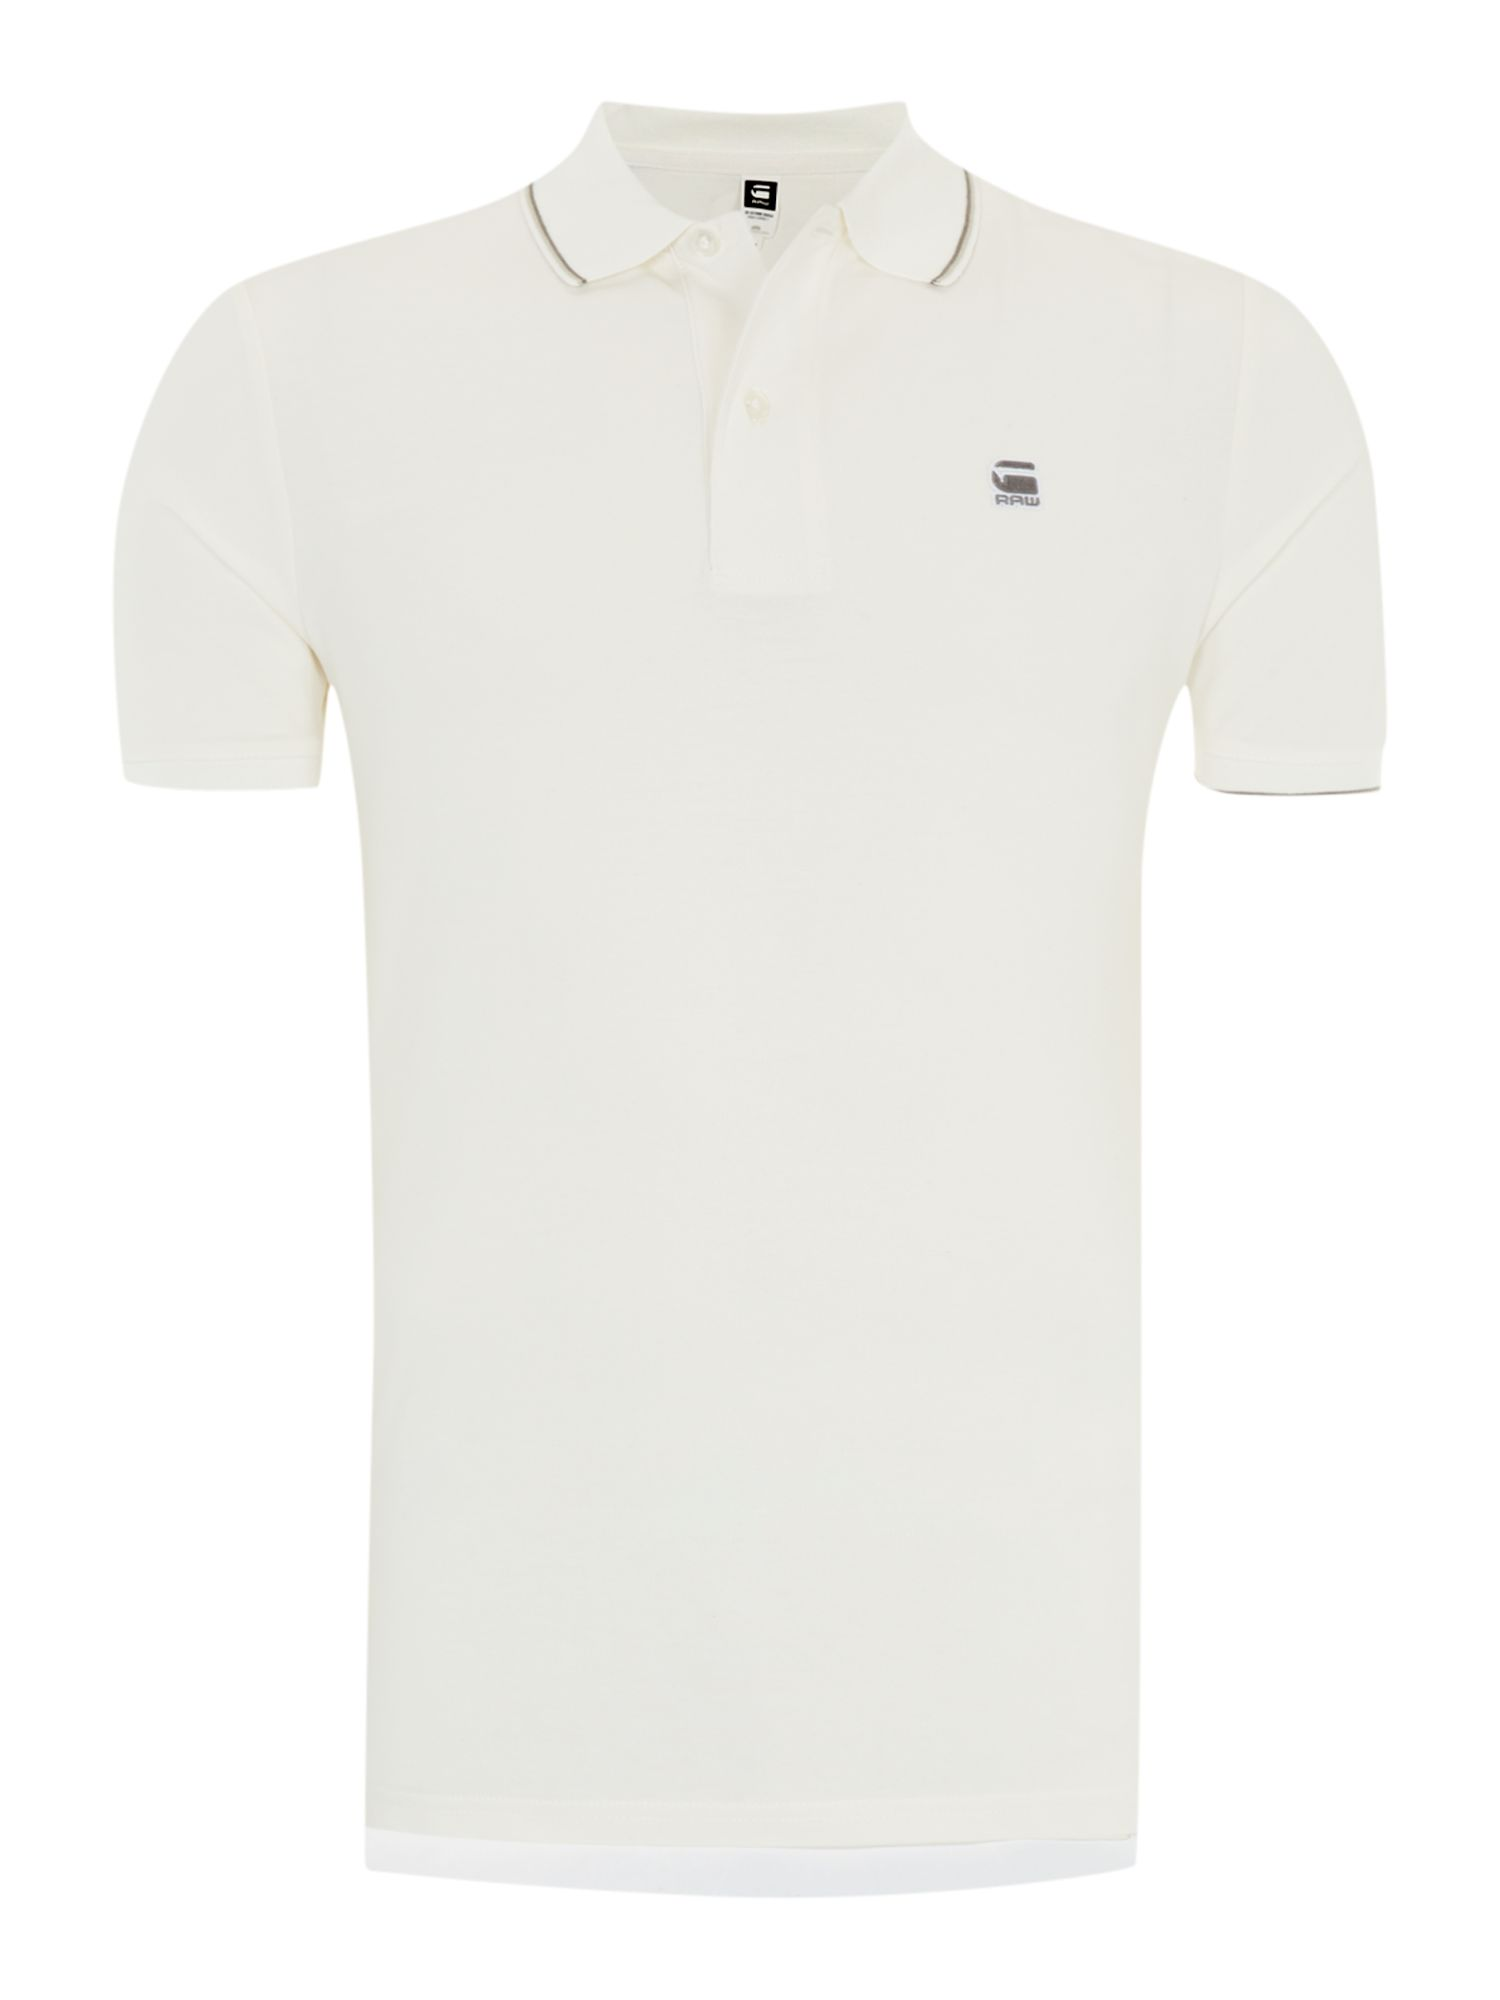 Manor polo shirt